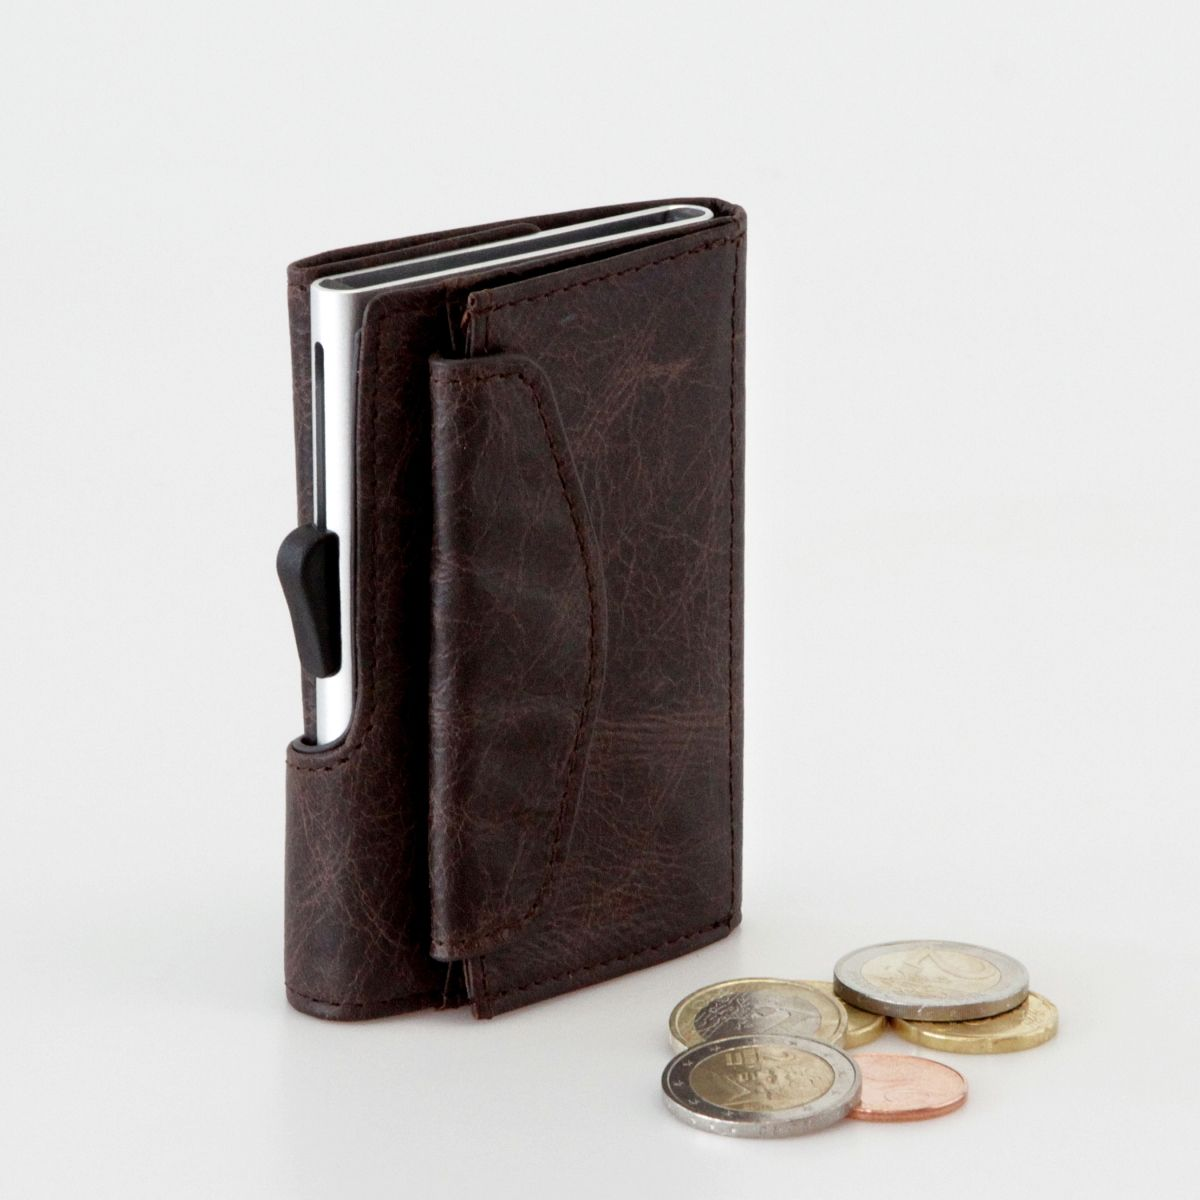 C-Secure Aluminum Card Holder with PU Leather with Coin Pouch - Dark Brown